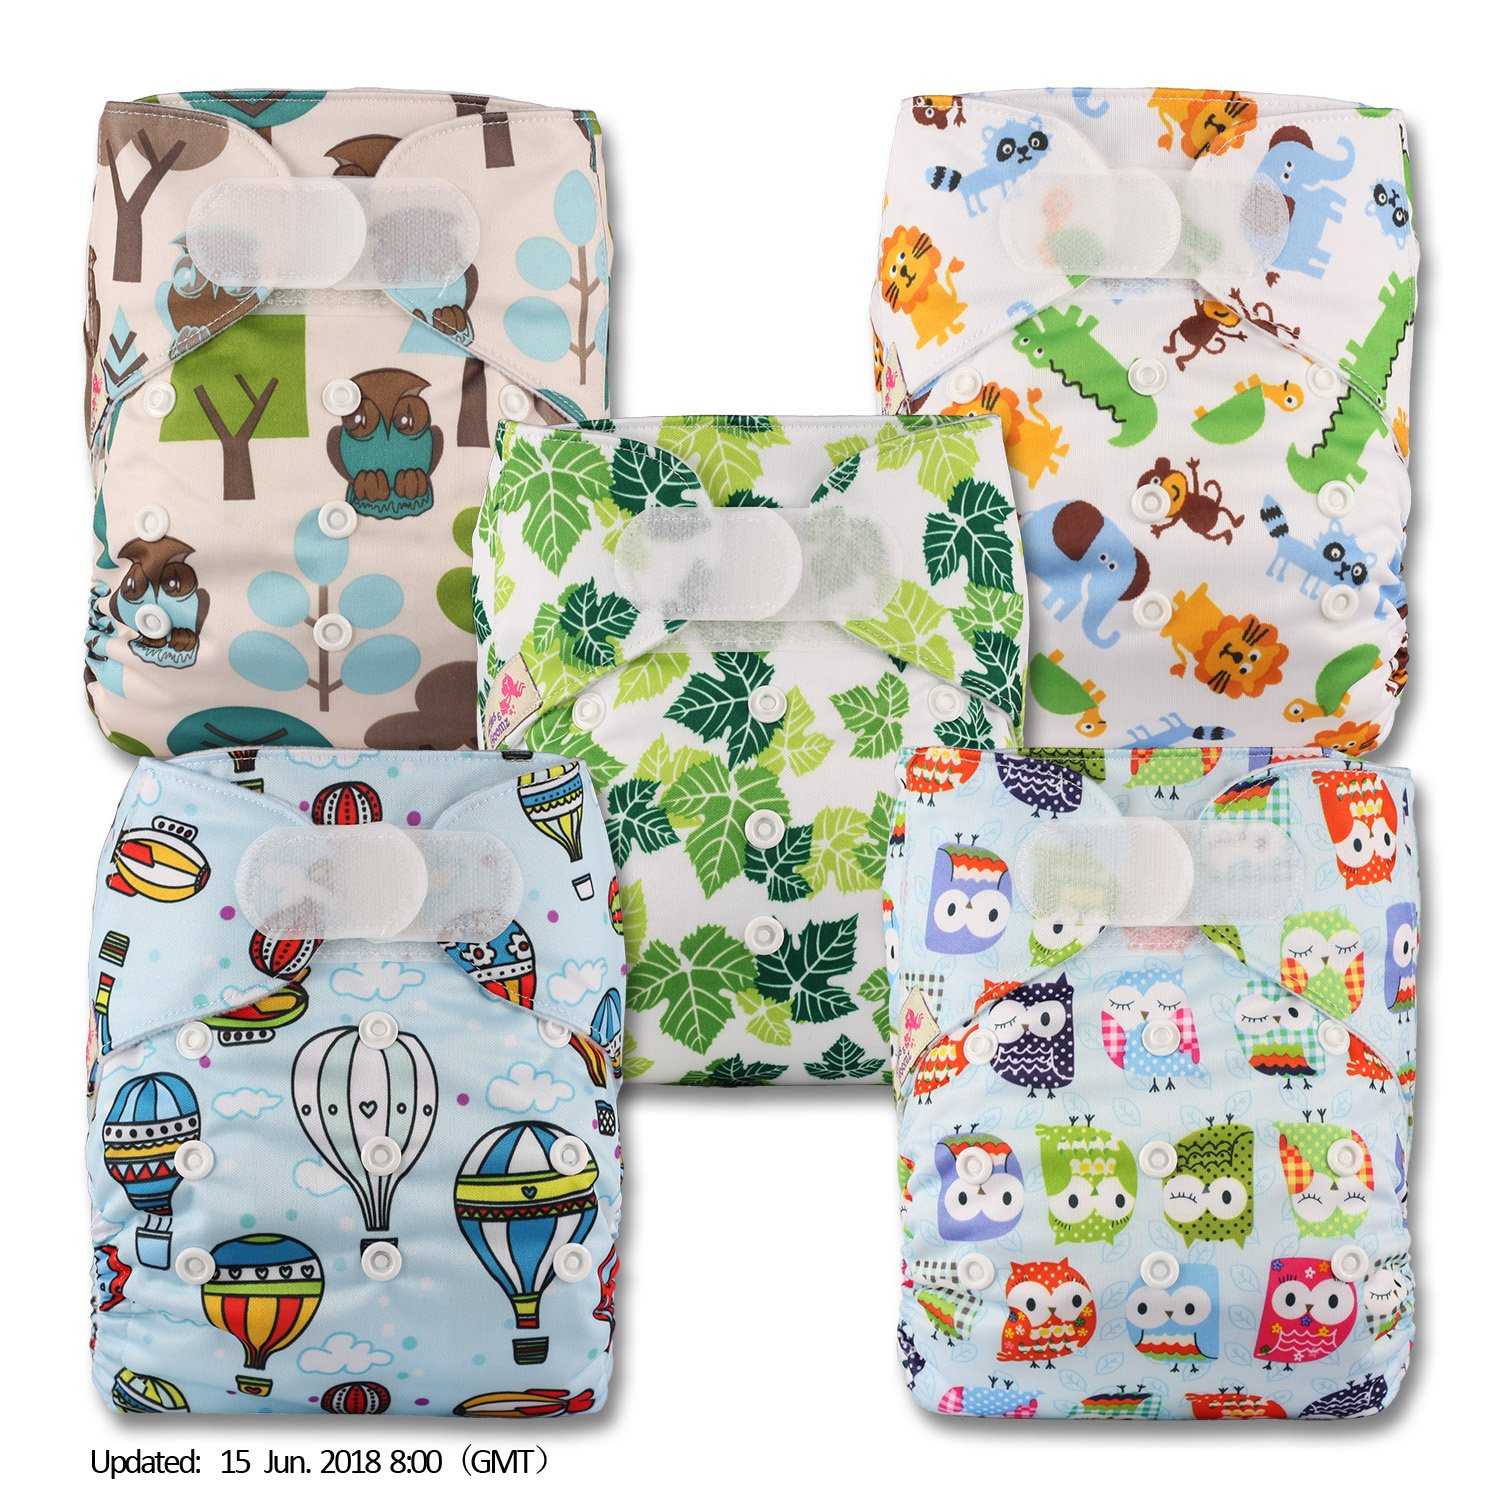 Littles & Bloomz, Reusable Pocket Cloth Nappy, Fastener: Hook-Loop, Set of 5, Patterns 501, With 5 Bamboo Inserts